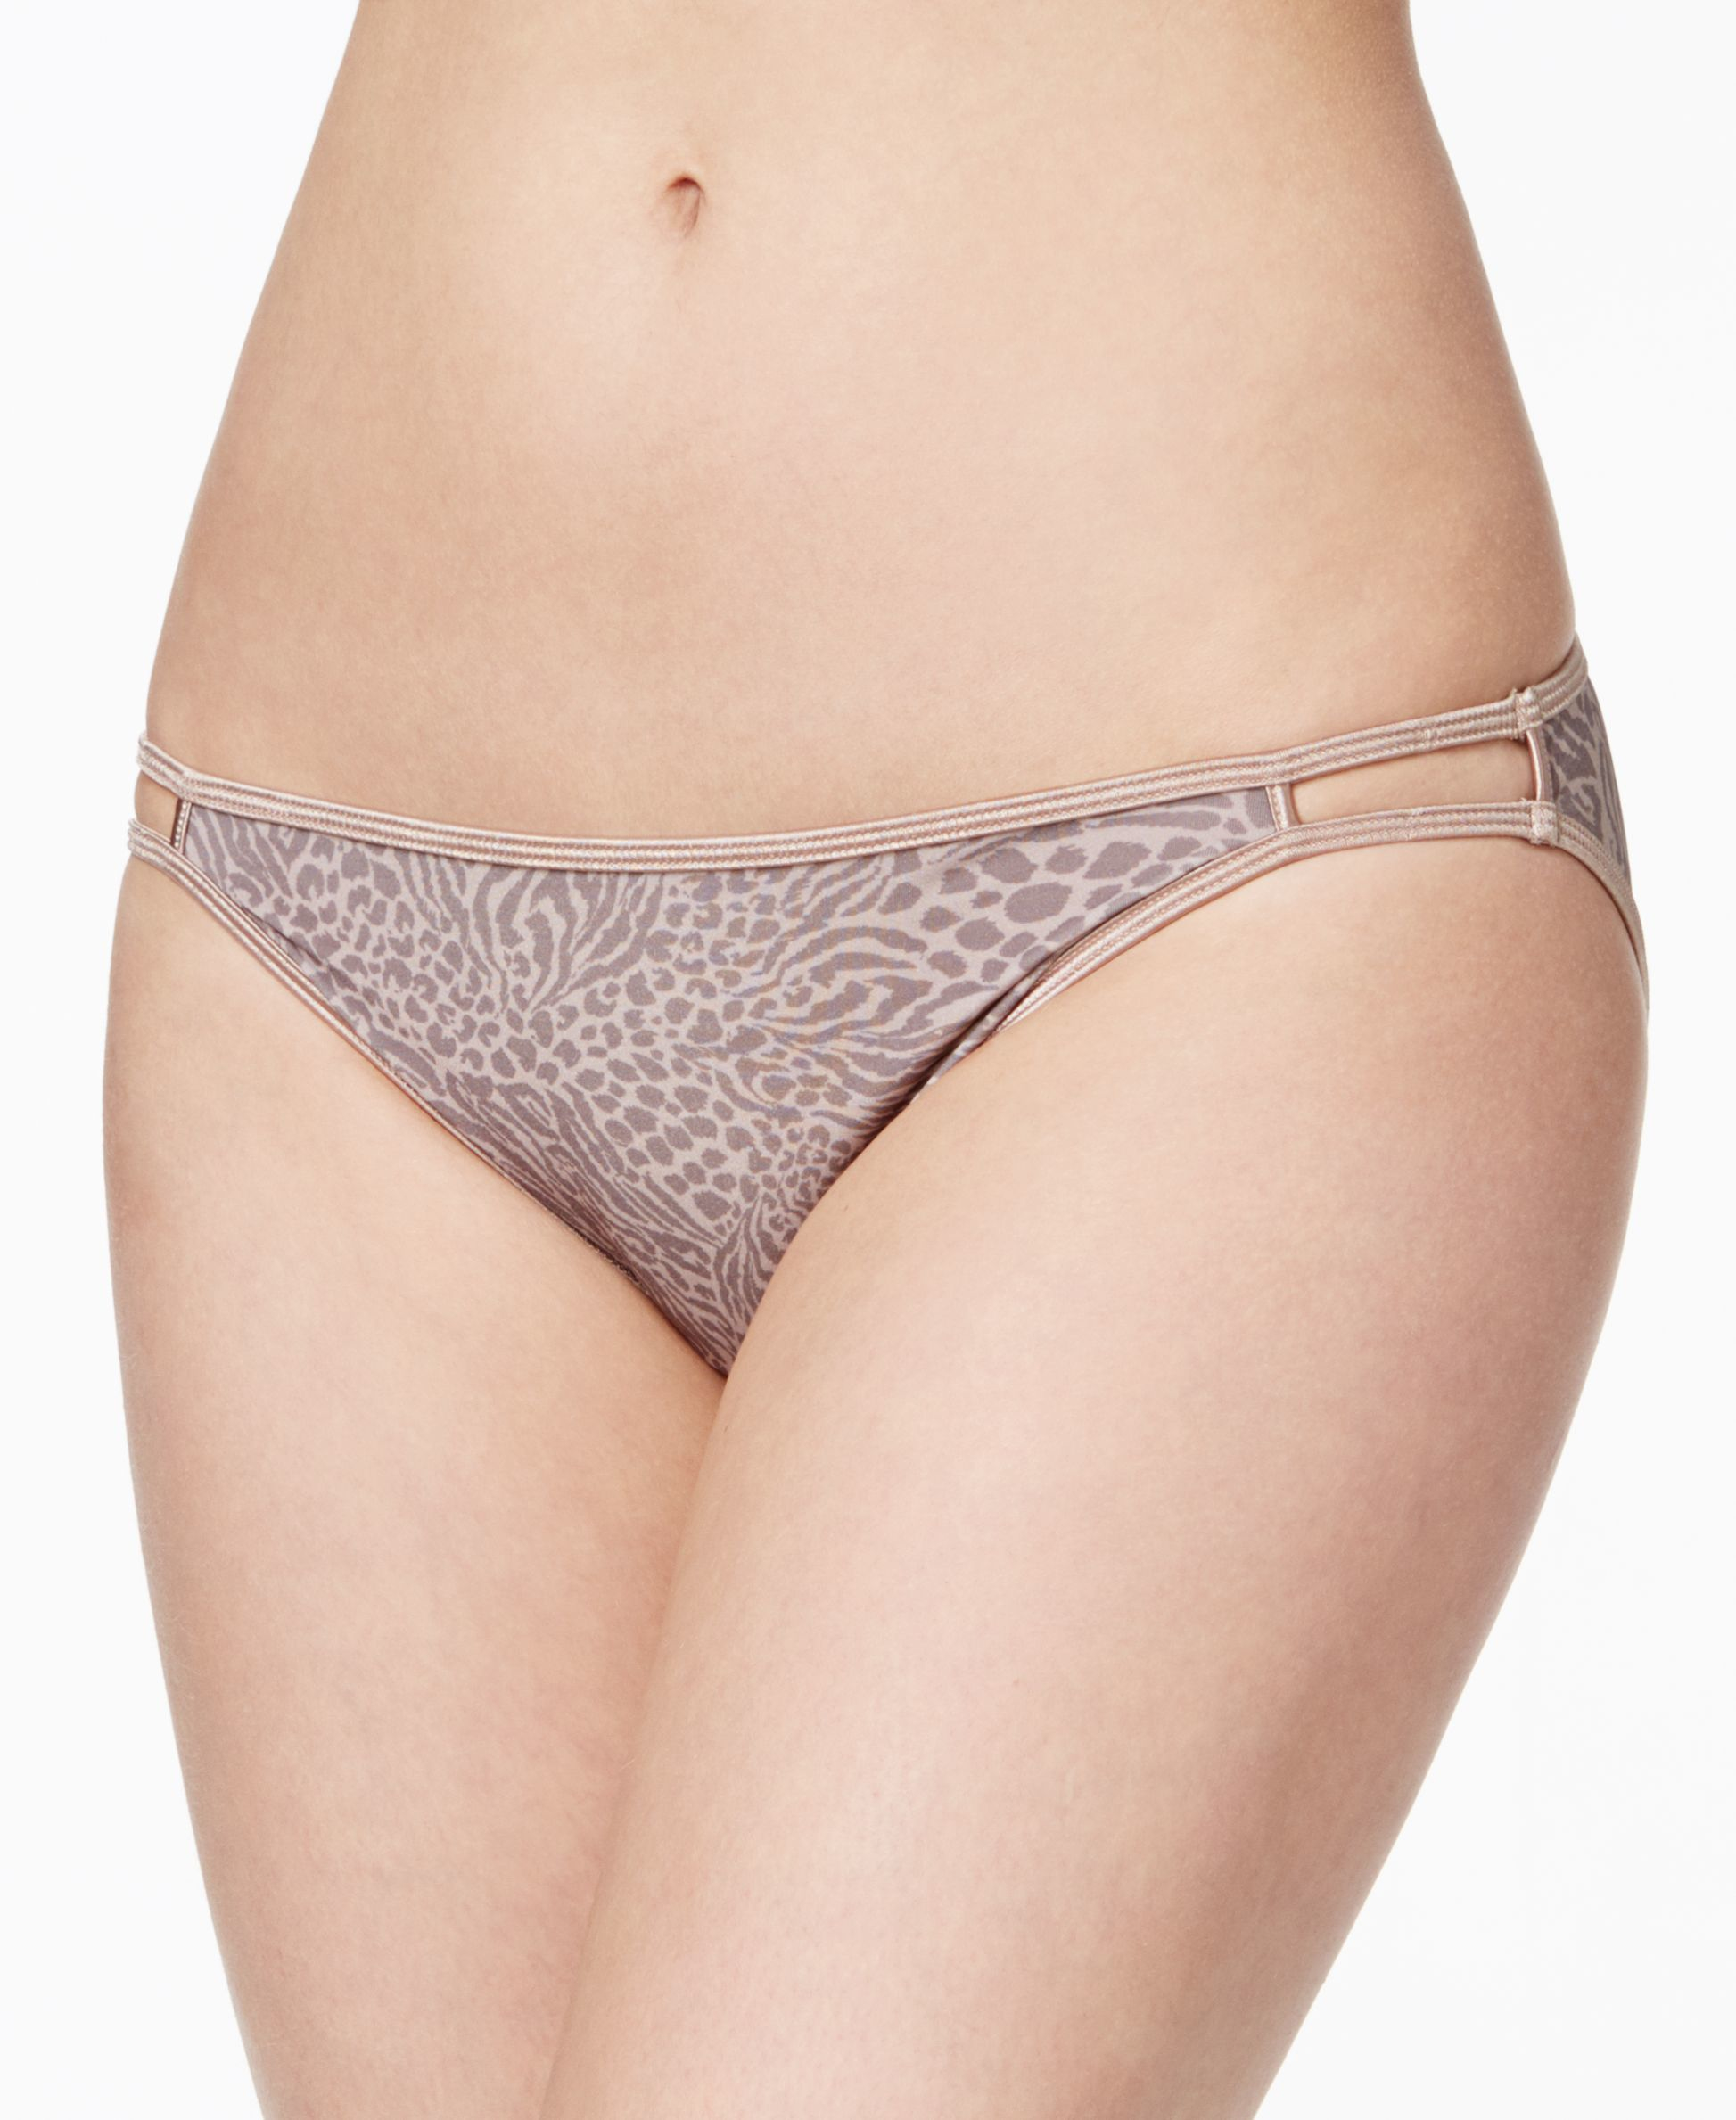 Vanity fair illuminations string bikini